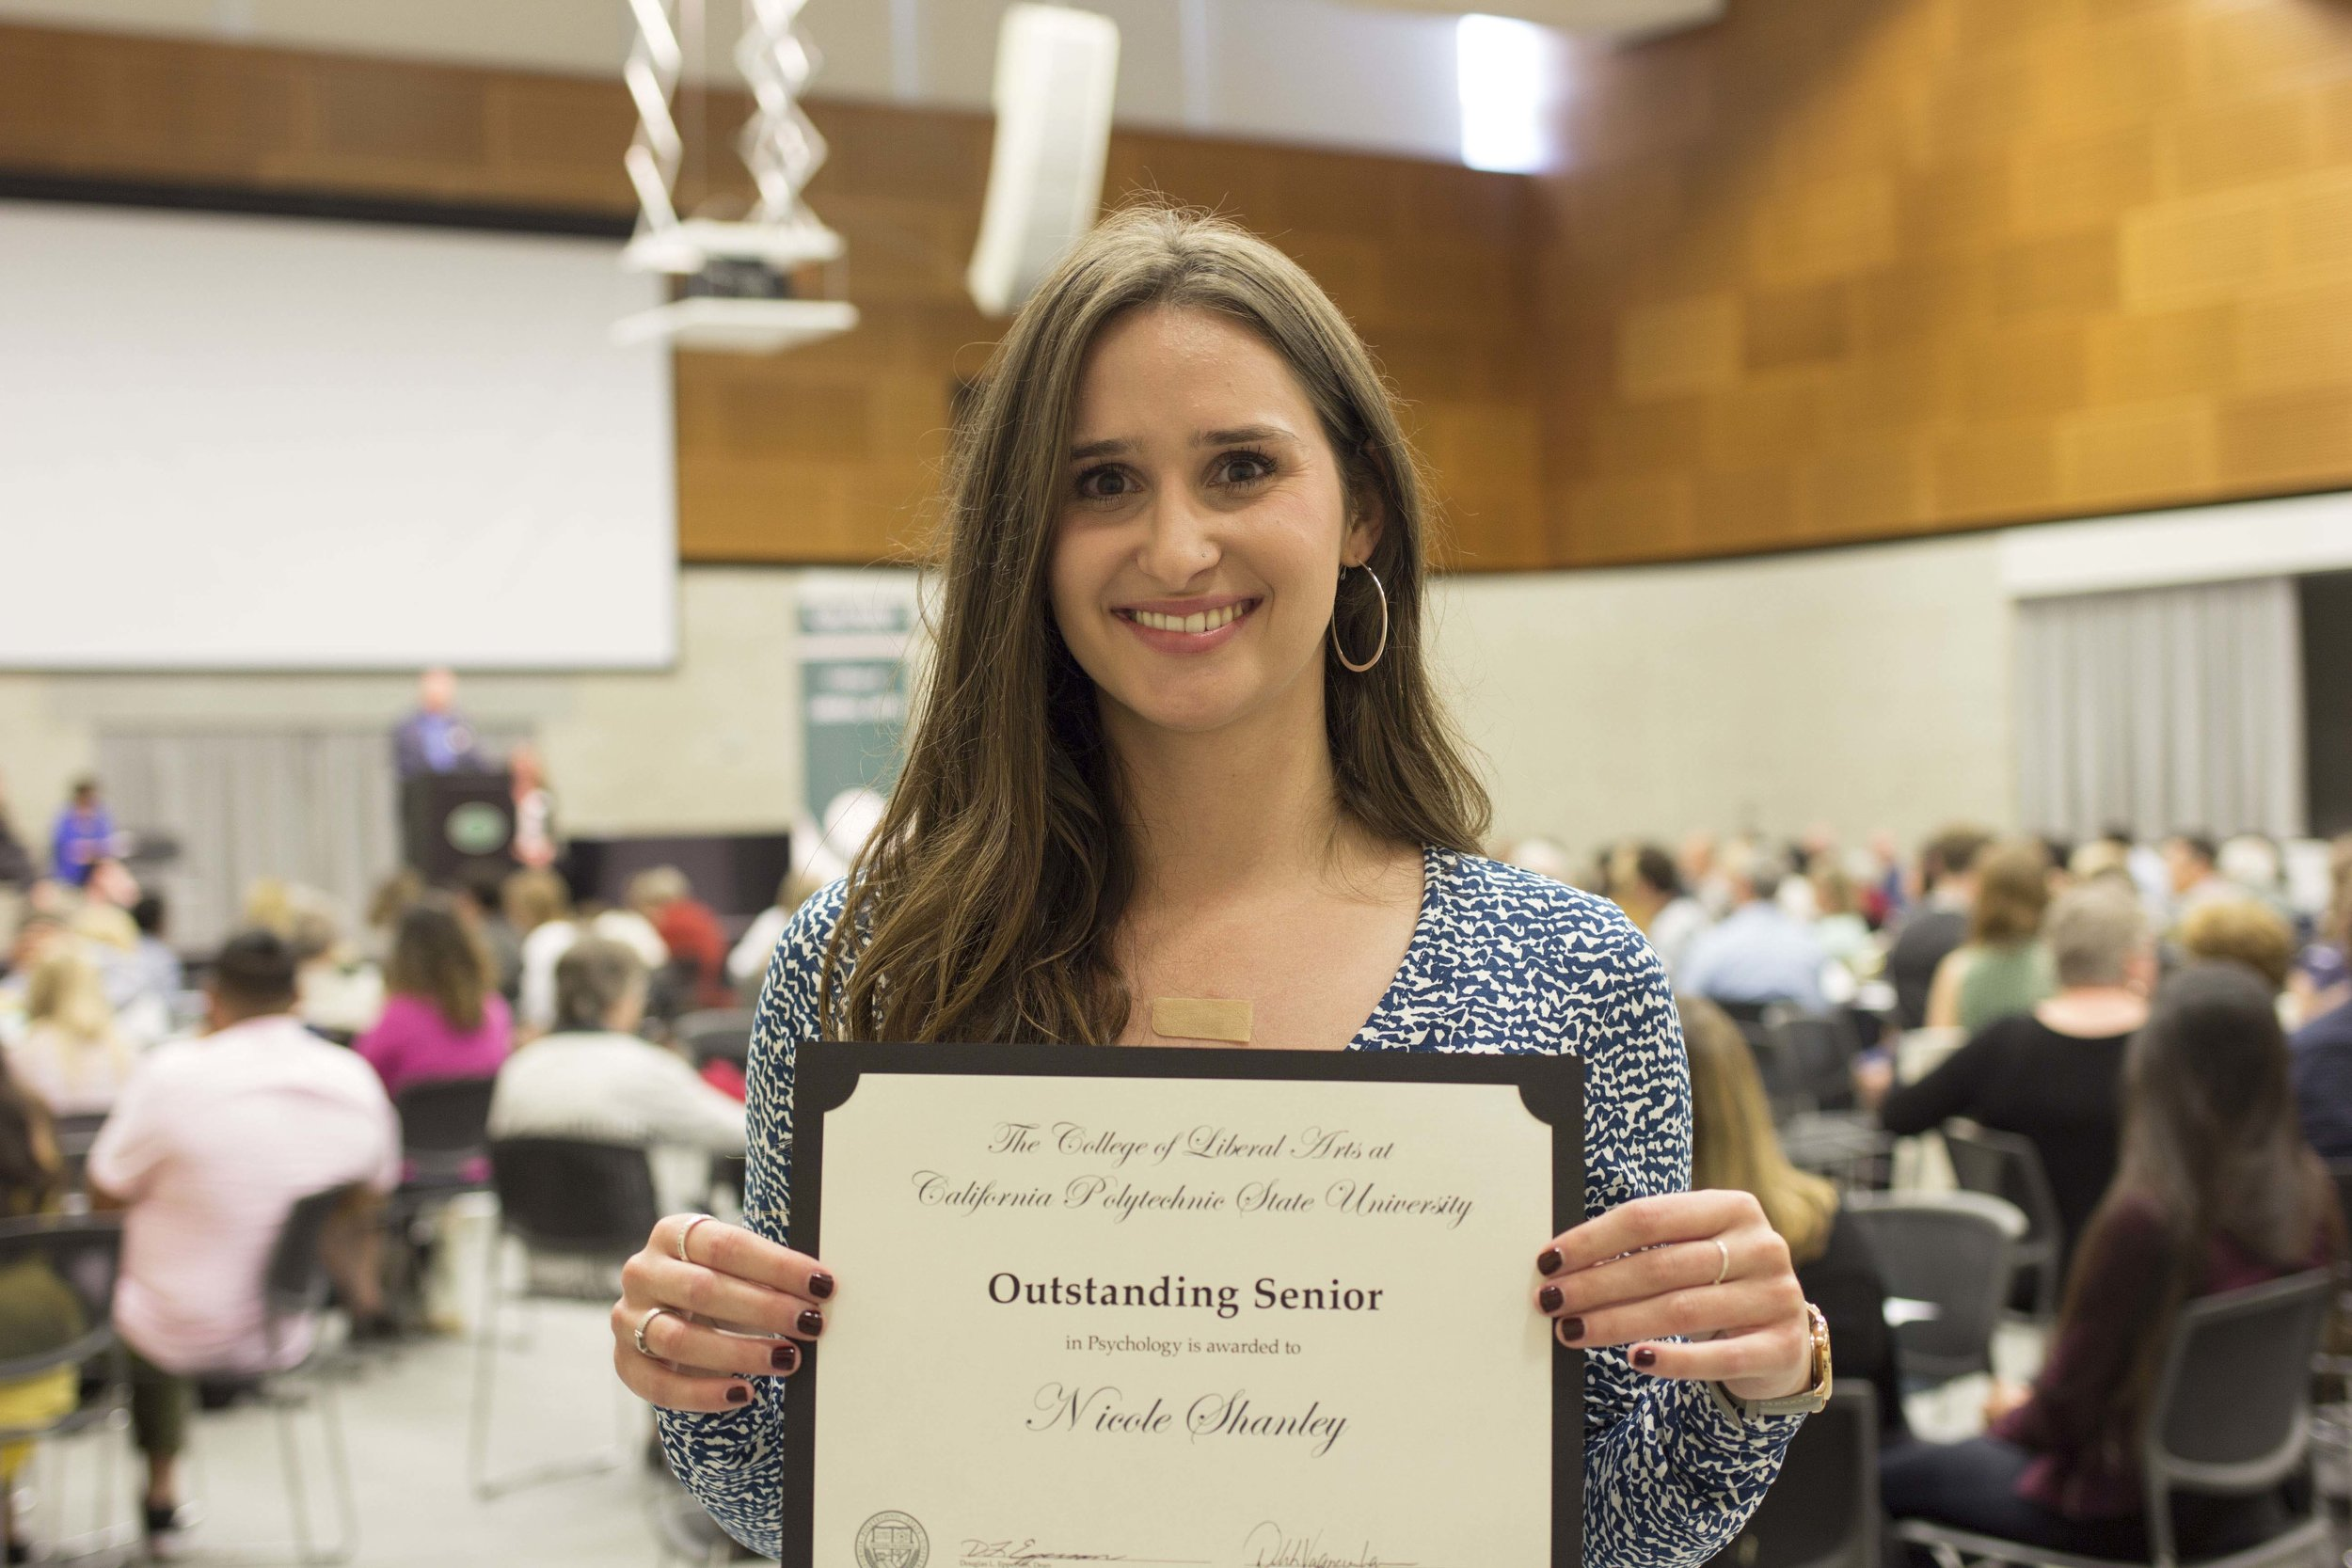 QCARES Alumni, Nicole Shanley, Recognized as Outstanding Senior in Psychology at Graduation 2018